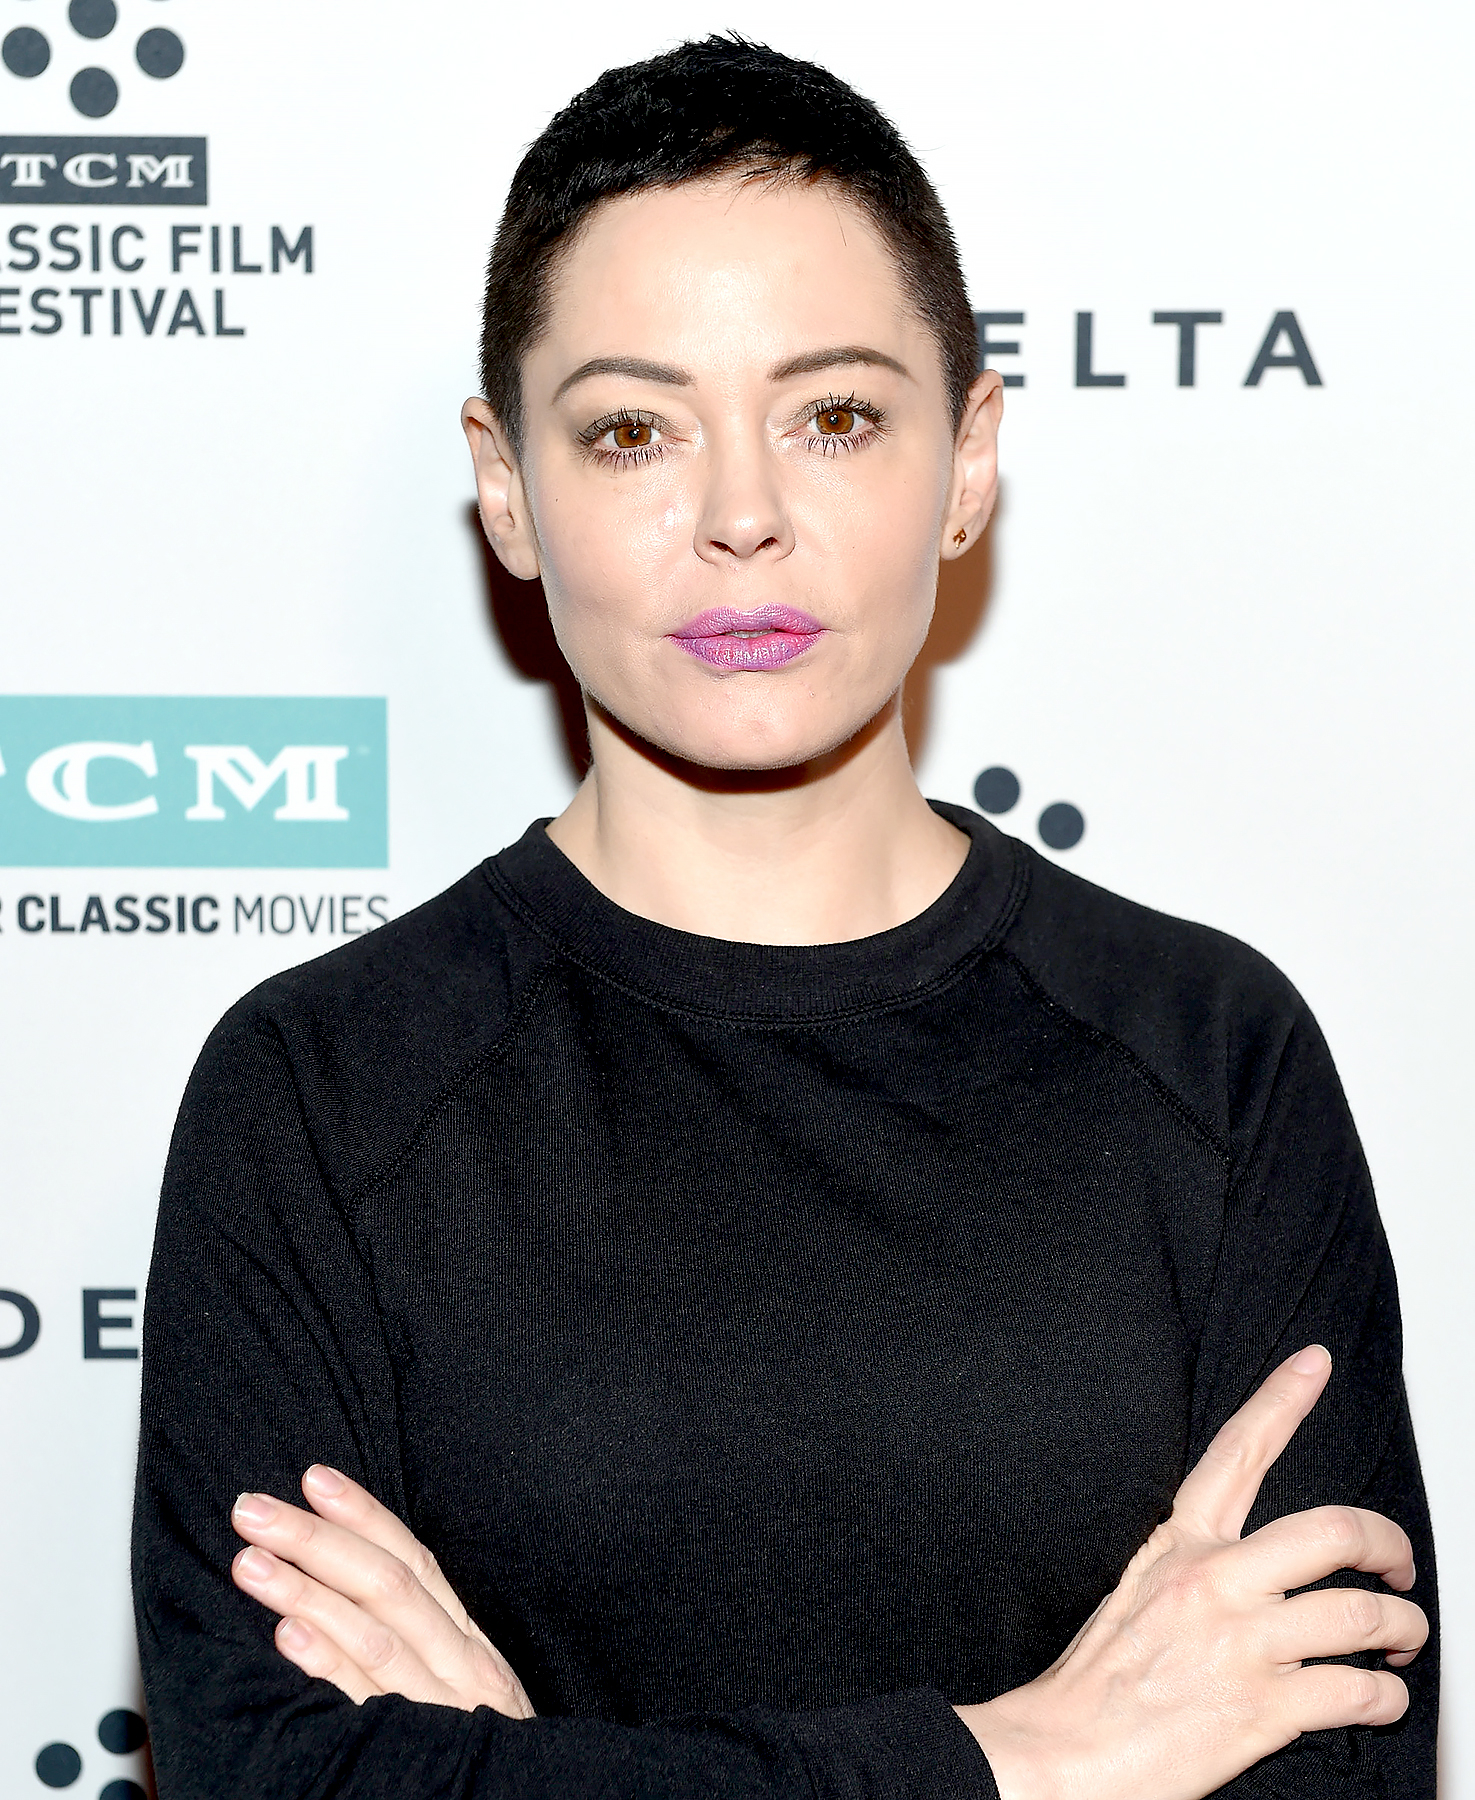 Rose McGowan Is Not Impressed With Some Actresses' Golden Globes Protest